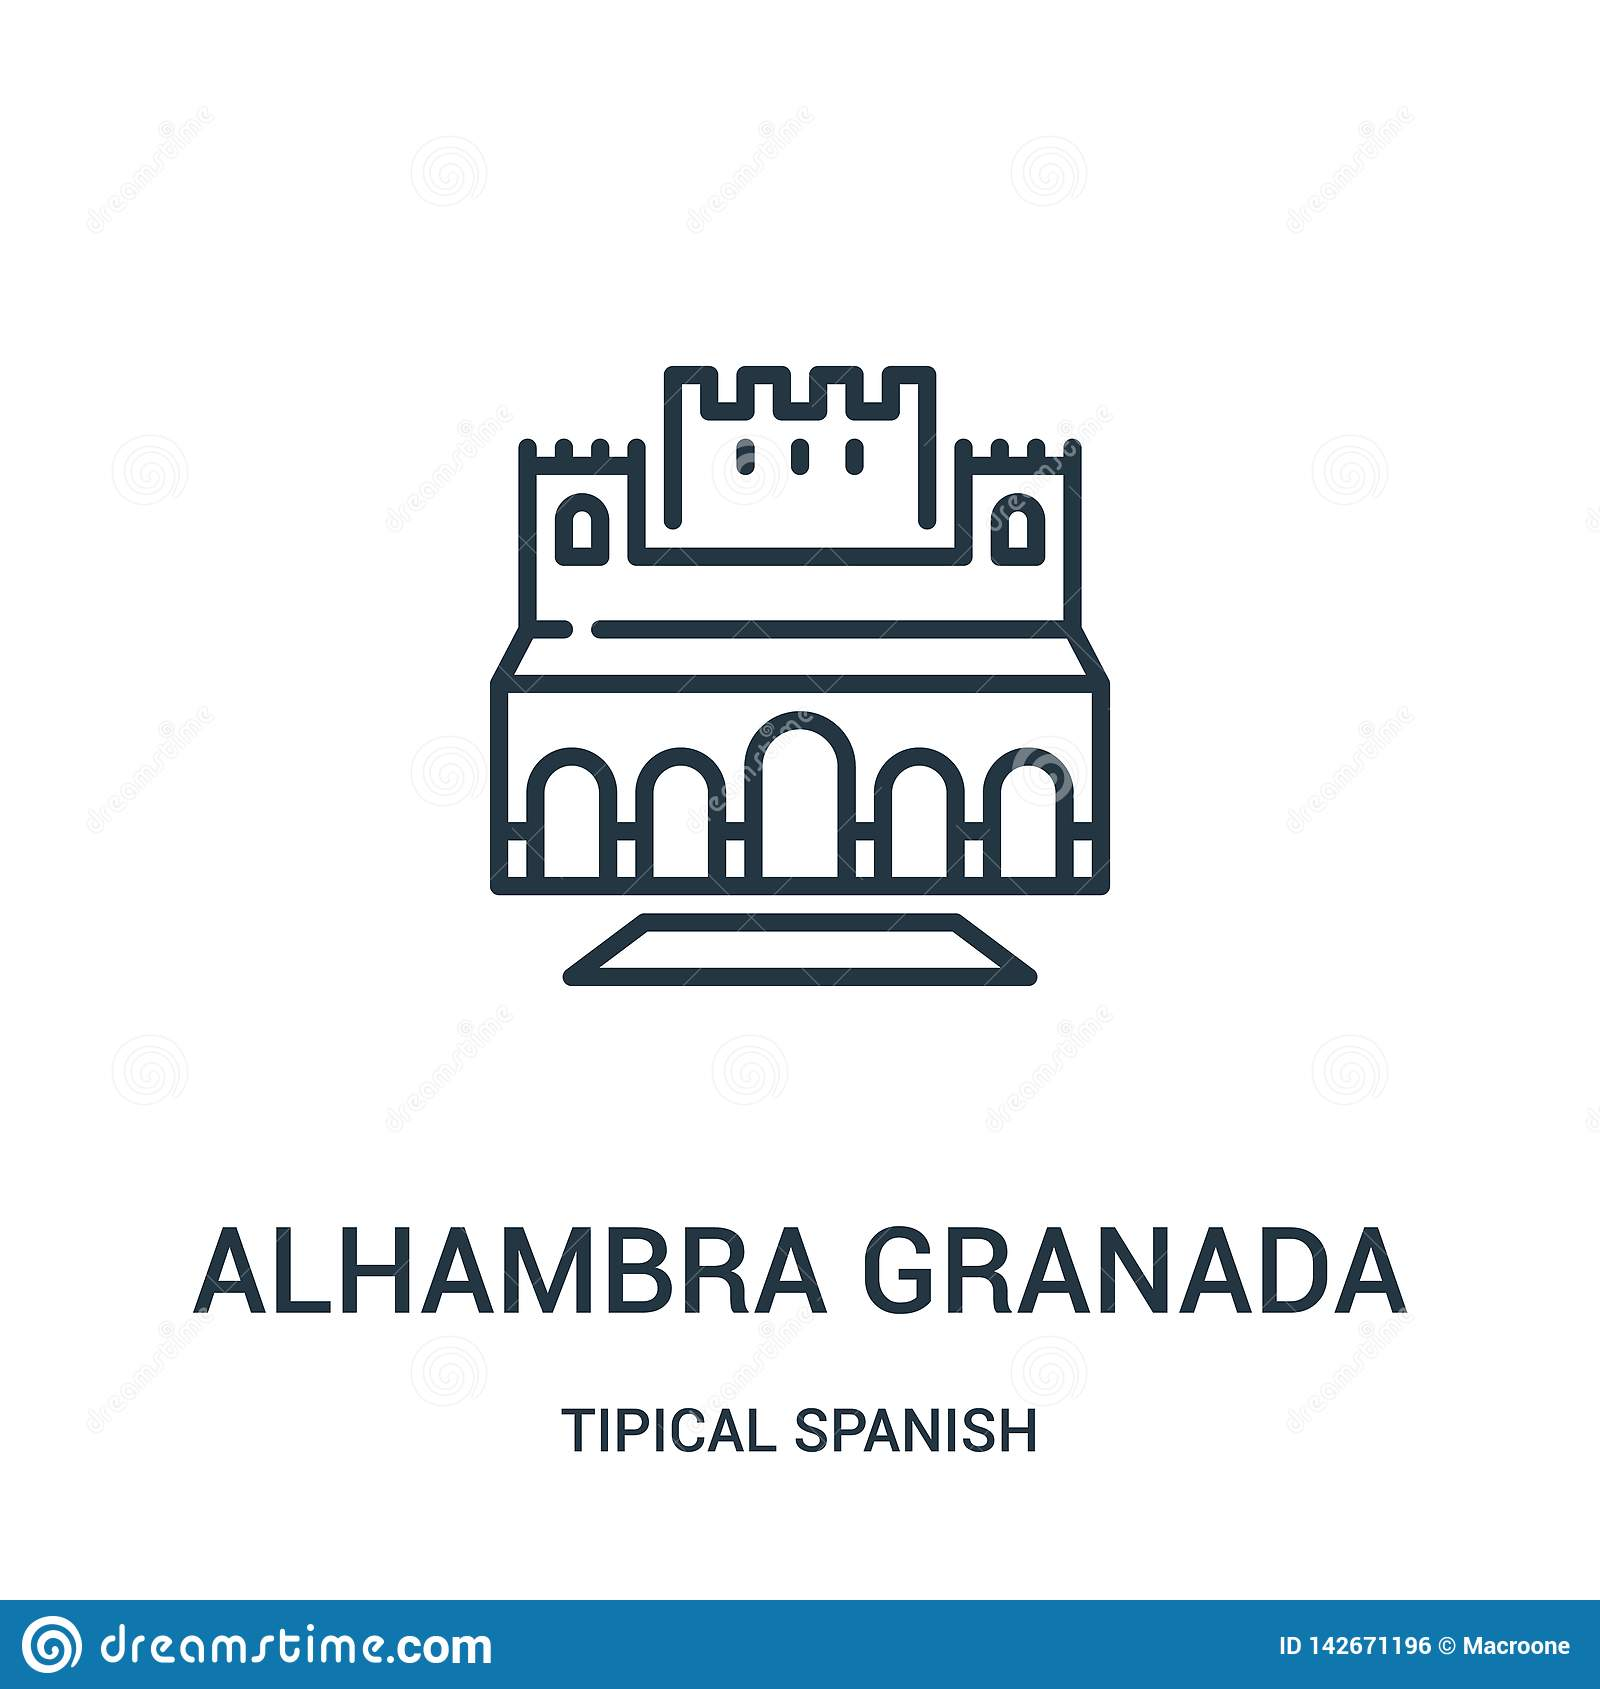 alhambra granada icon vector from tipical spanish collection. Thin line alhambra granada outline icon vector illustration. Linear